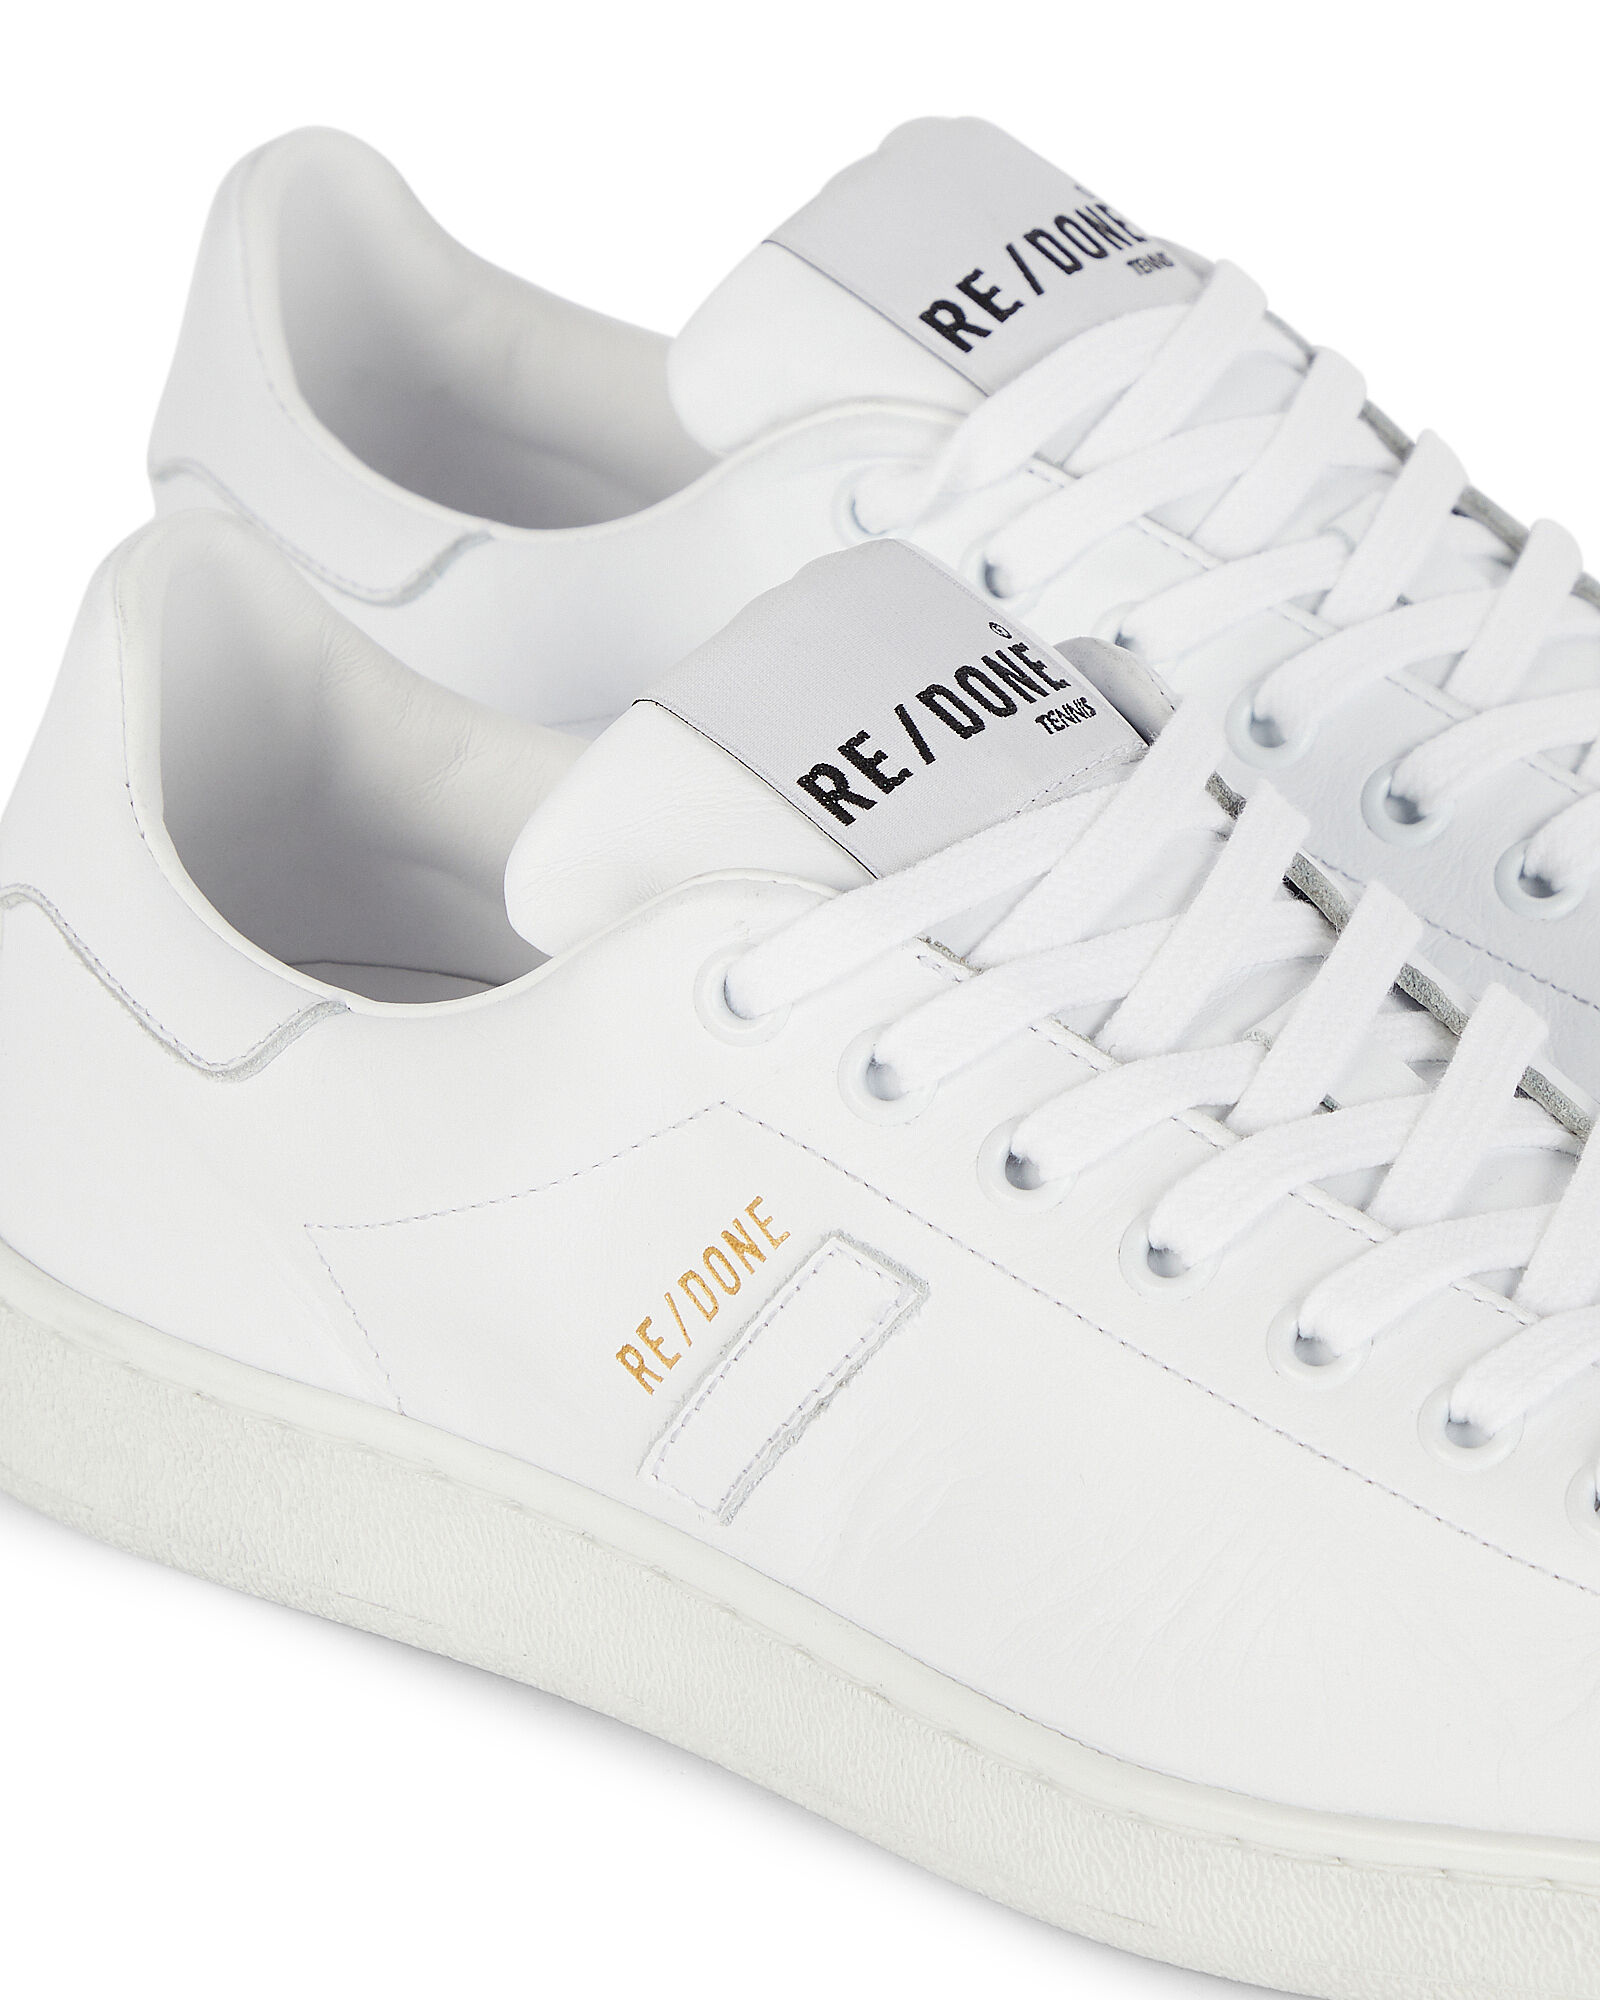 70s Leather Tennis Sneakers, WHITE, hi-res